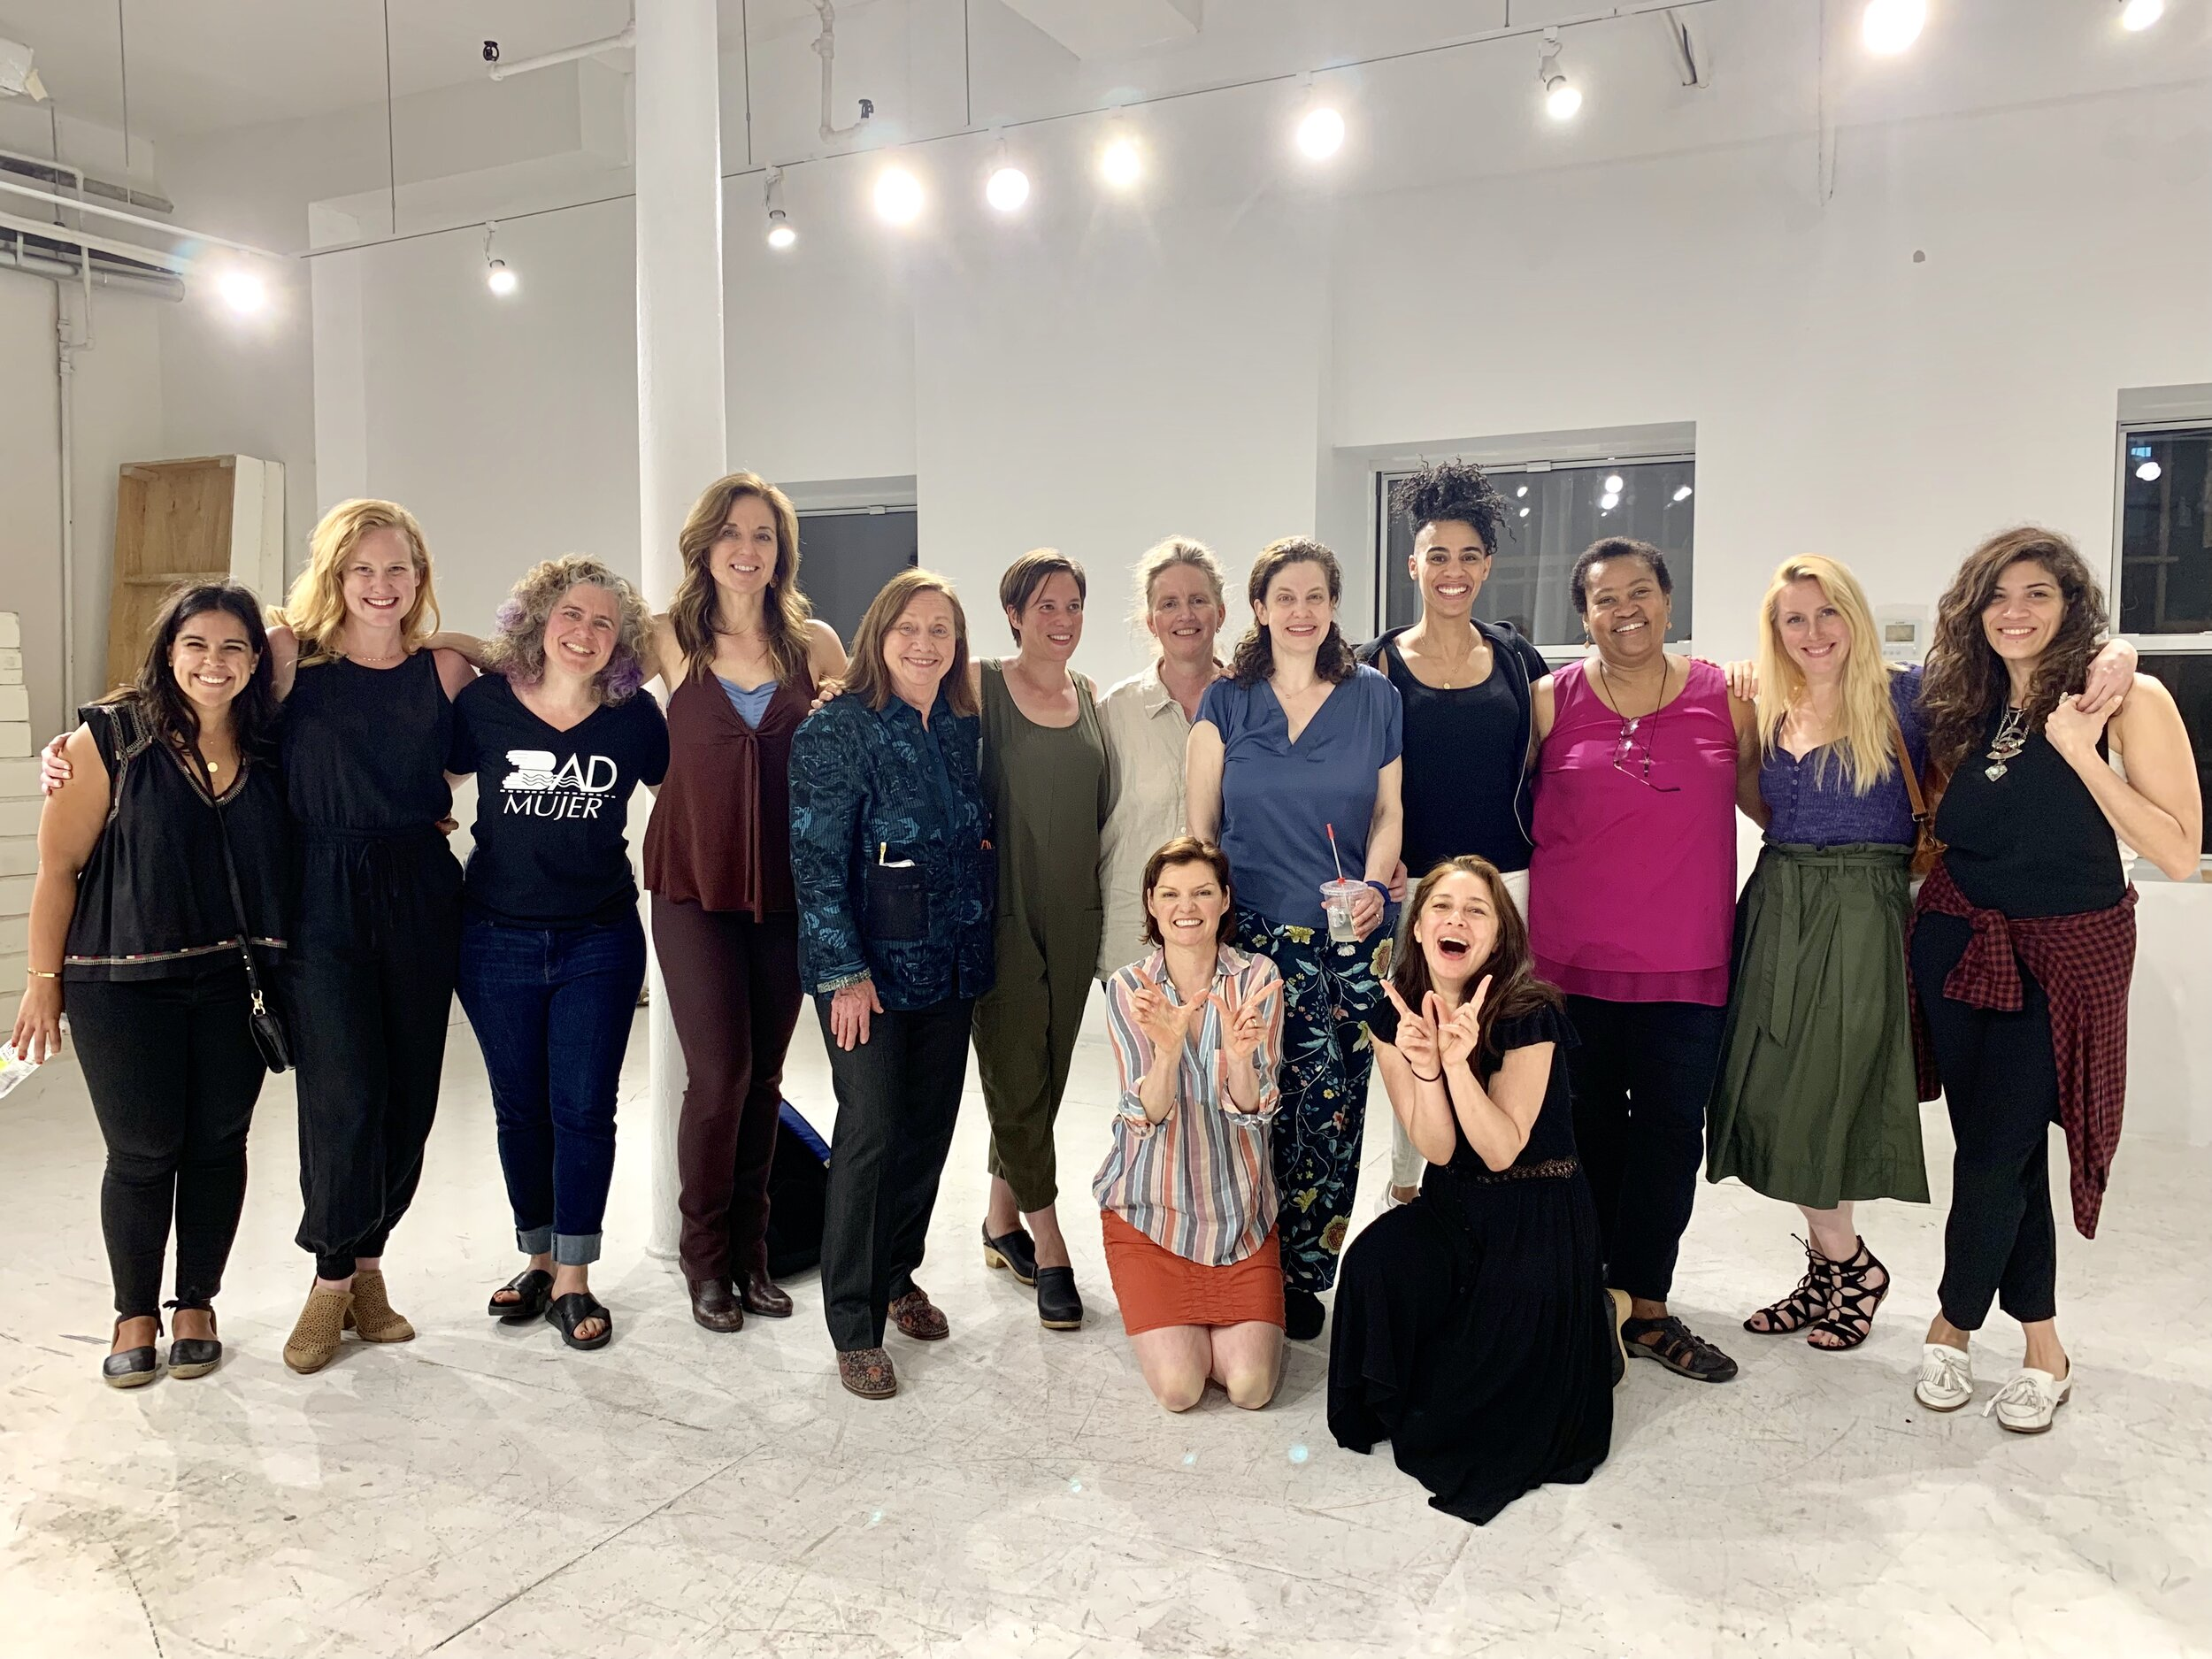 Members of the Women Artists Writing Group in NYC